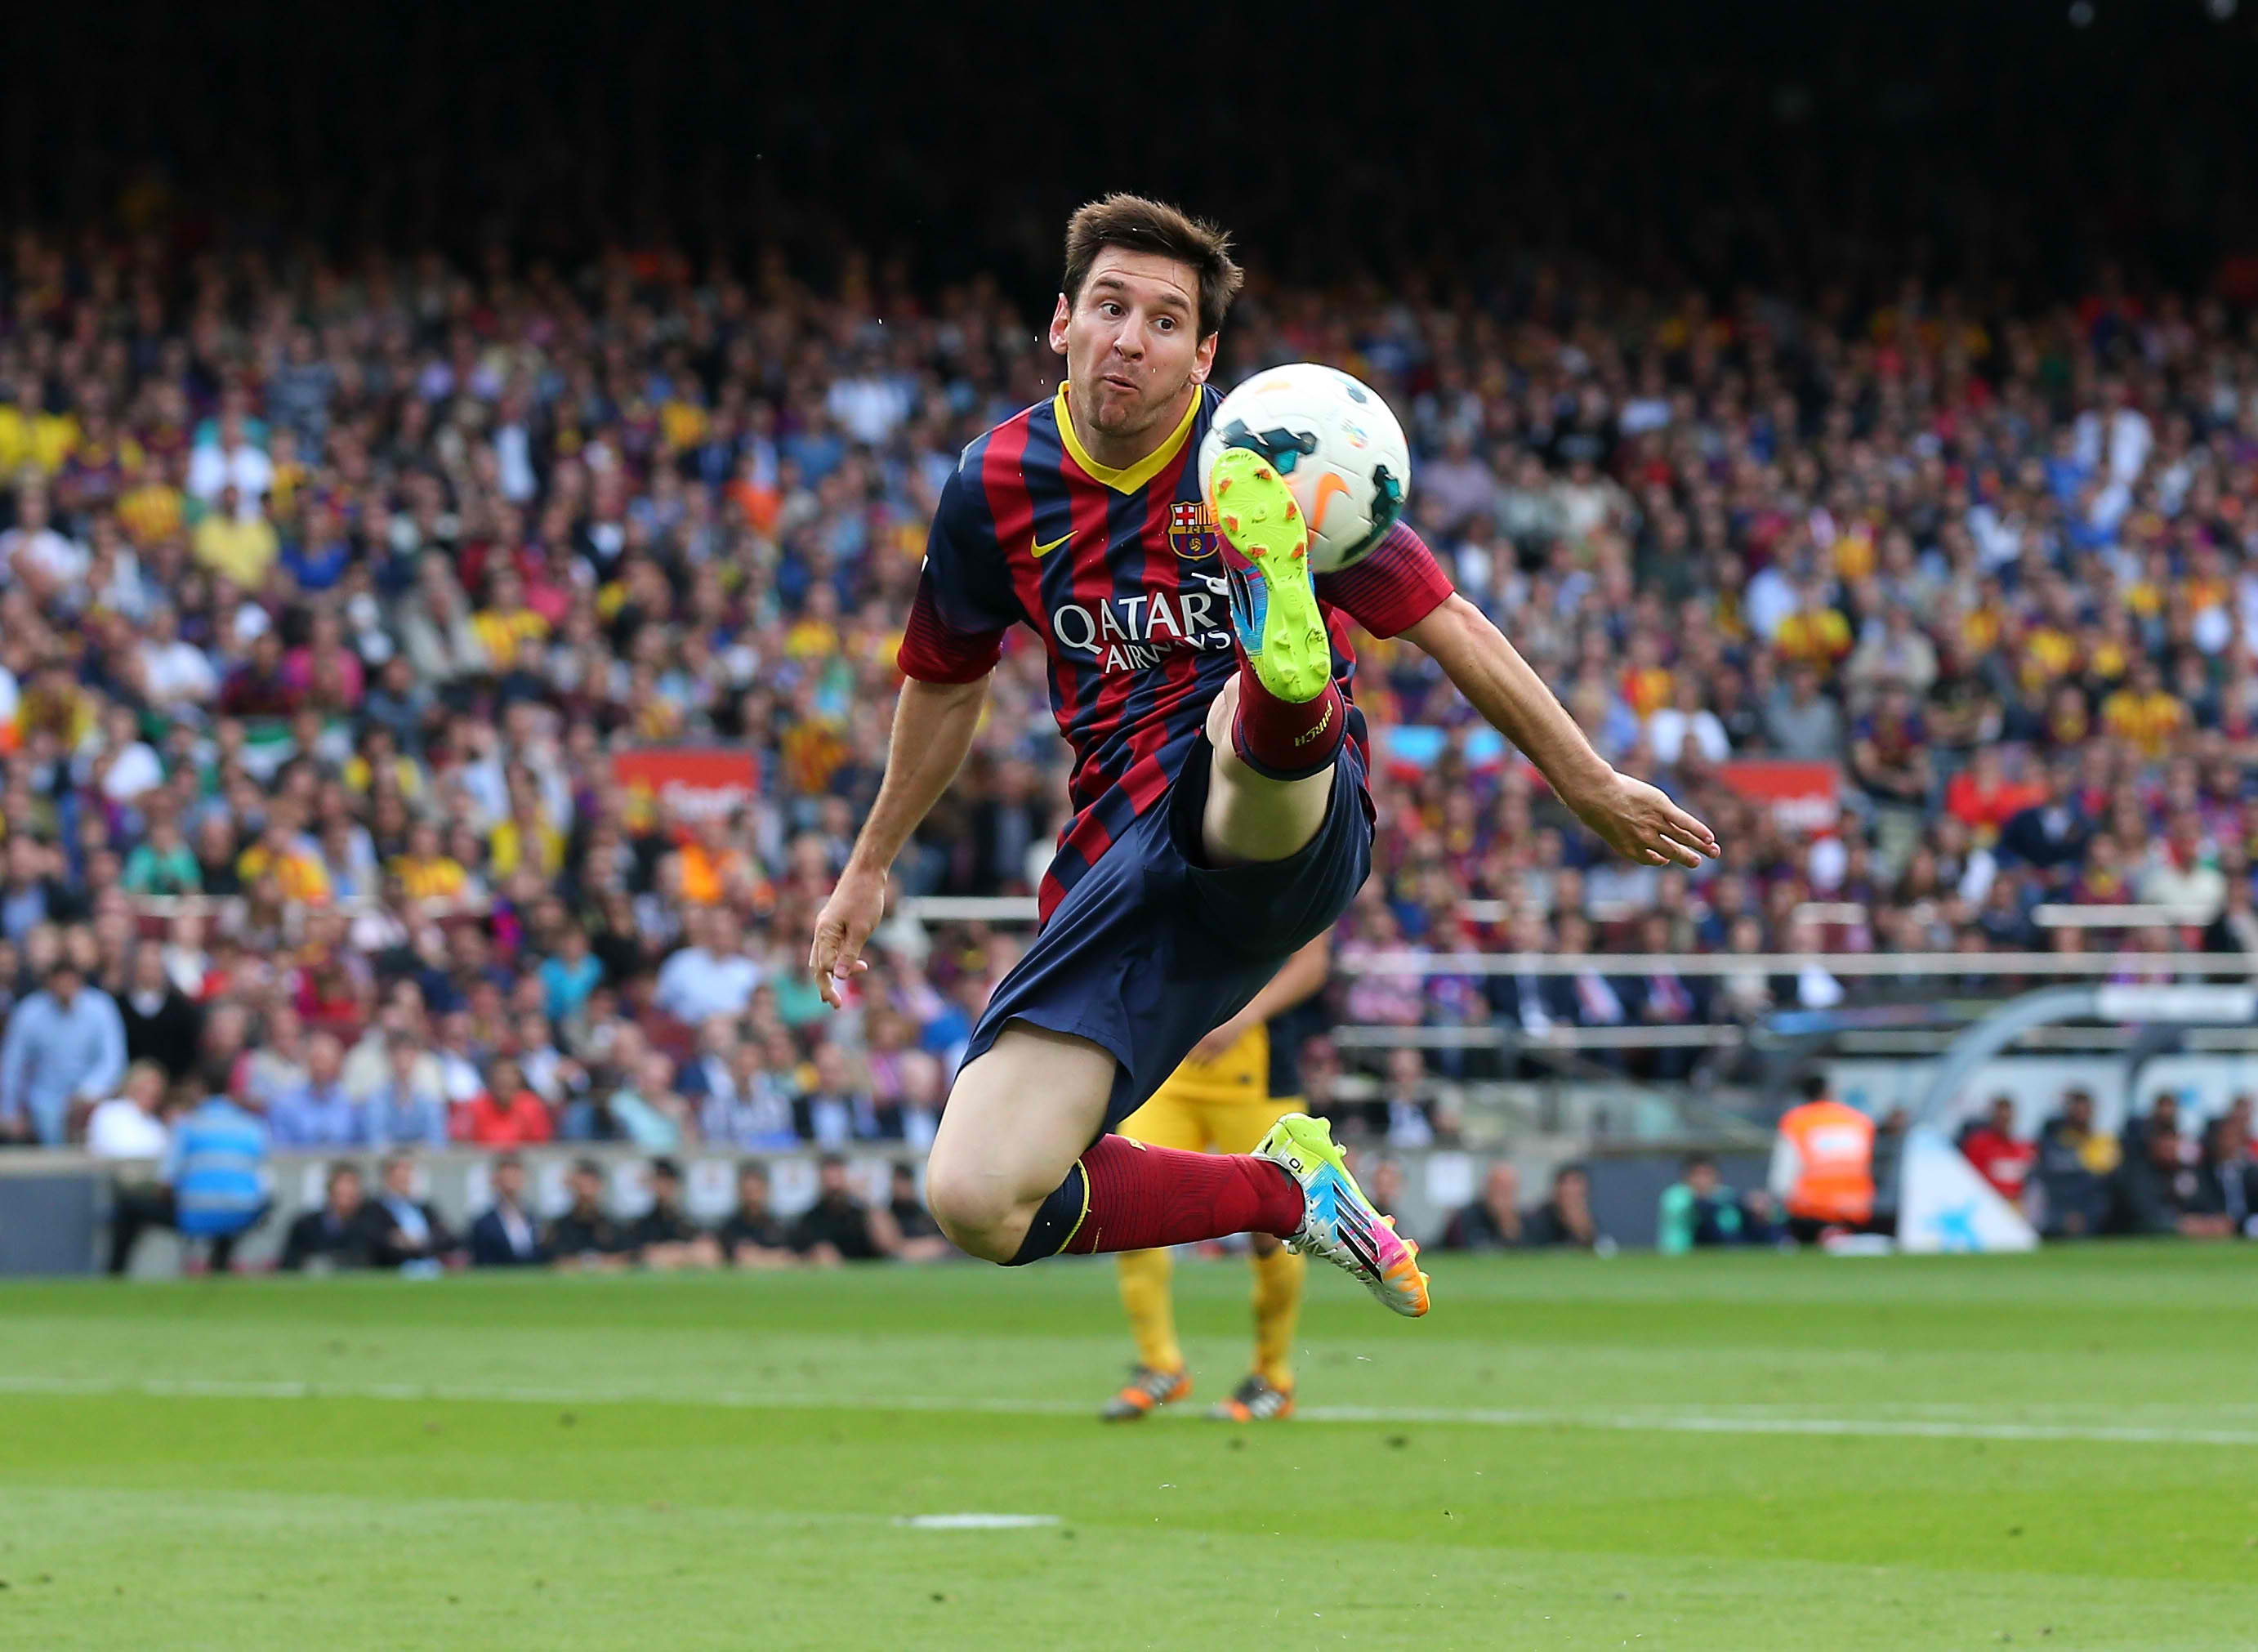 http://images.latinpost.com/data/images/full/11964/lionel-messi.jpg